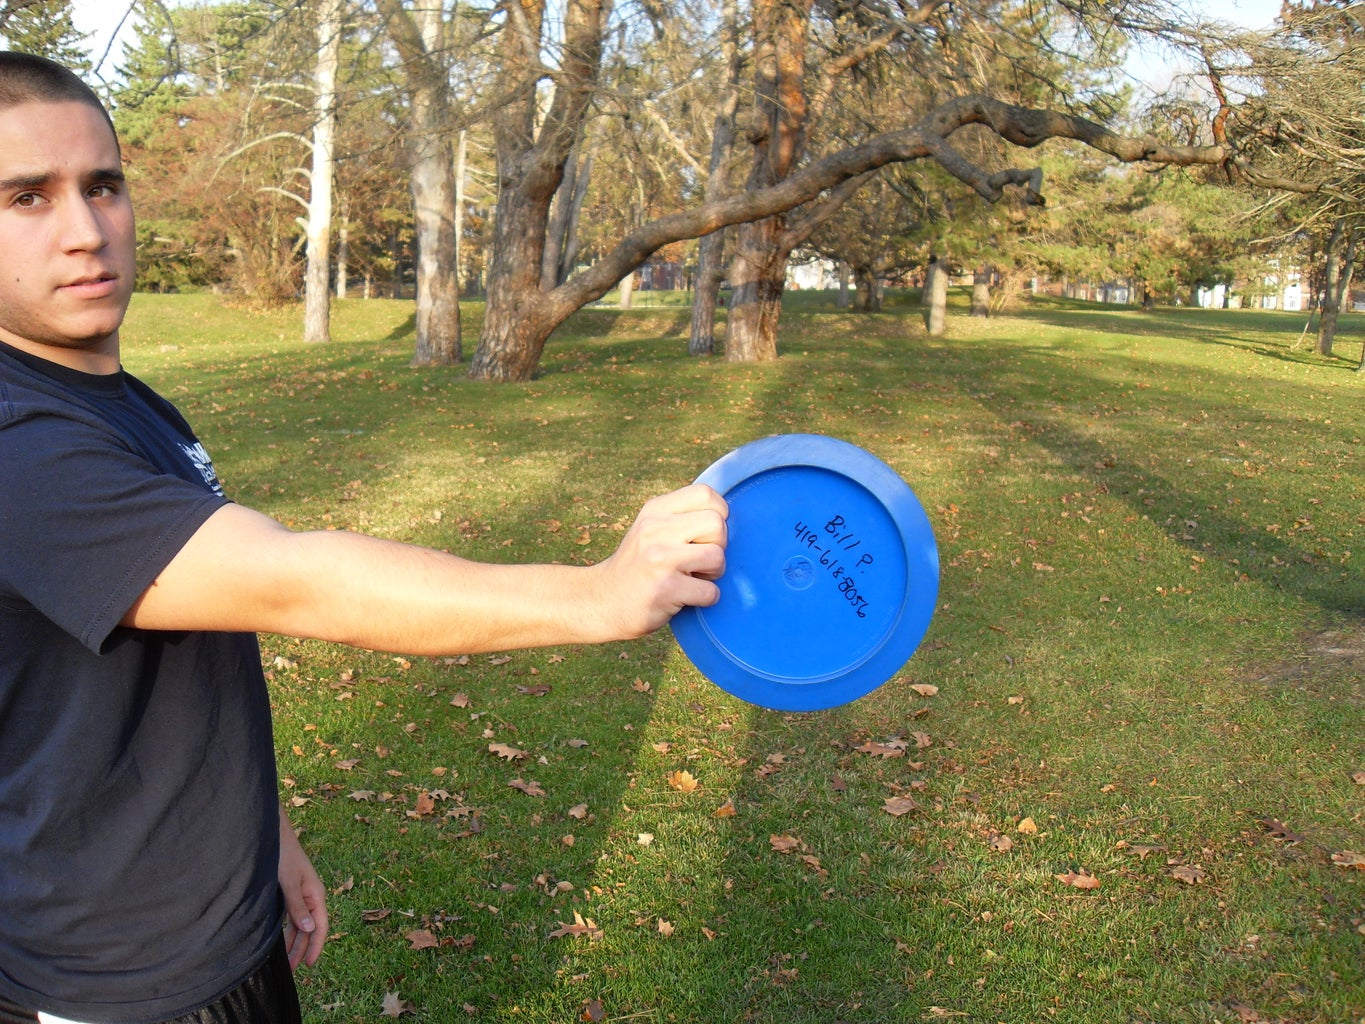 Gripping the Disc- Choice #1